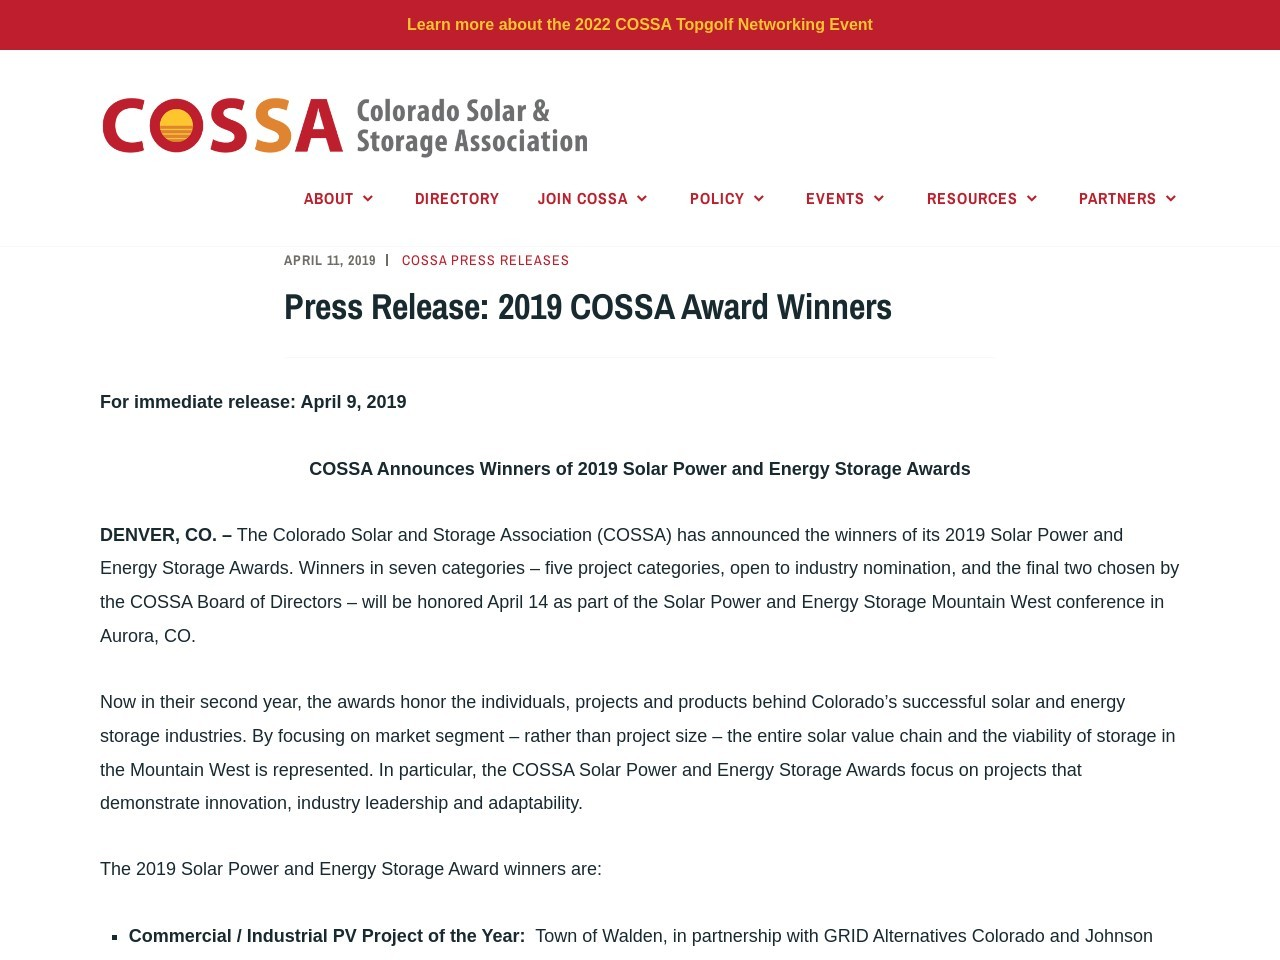 Press Release: 2019 COSSA Award Winners